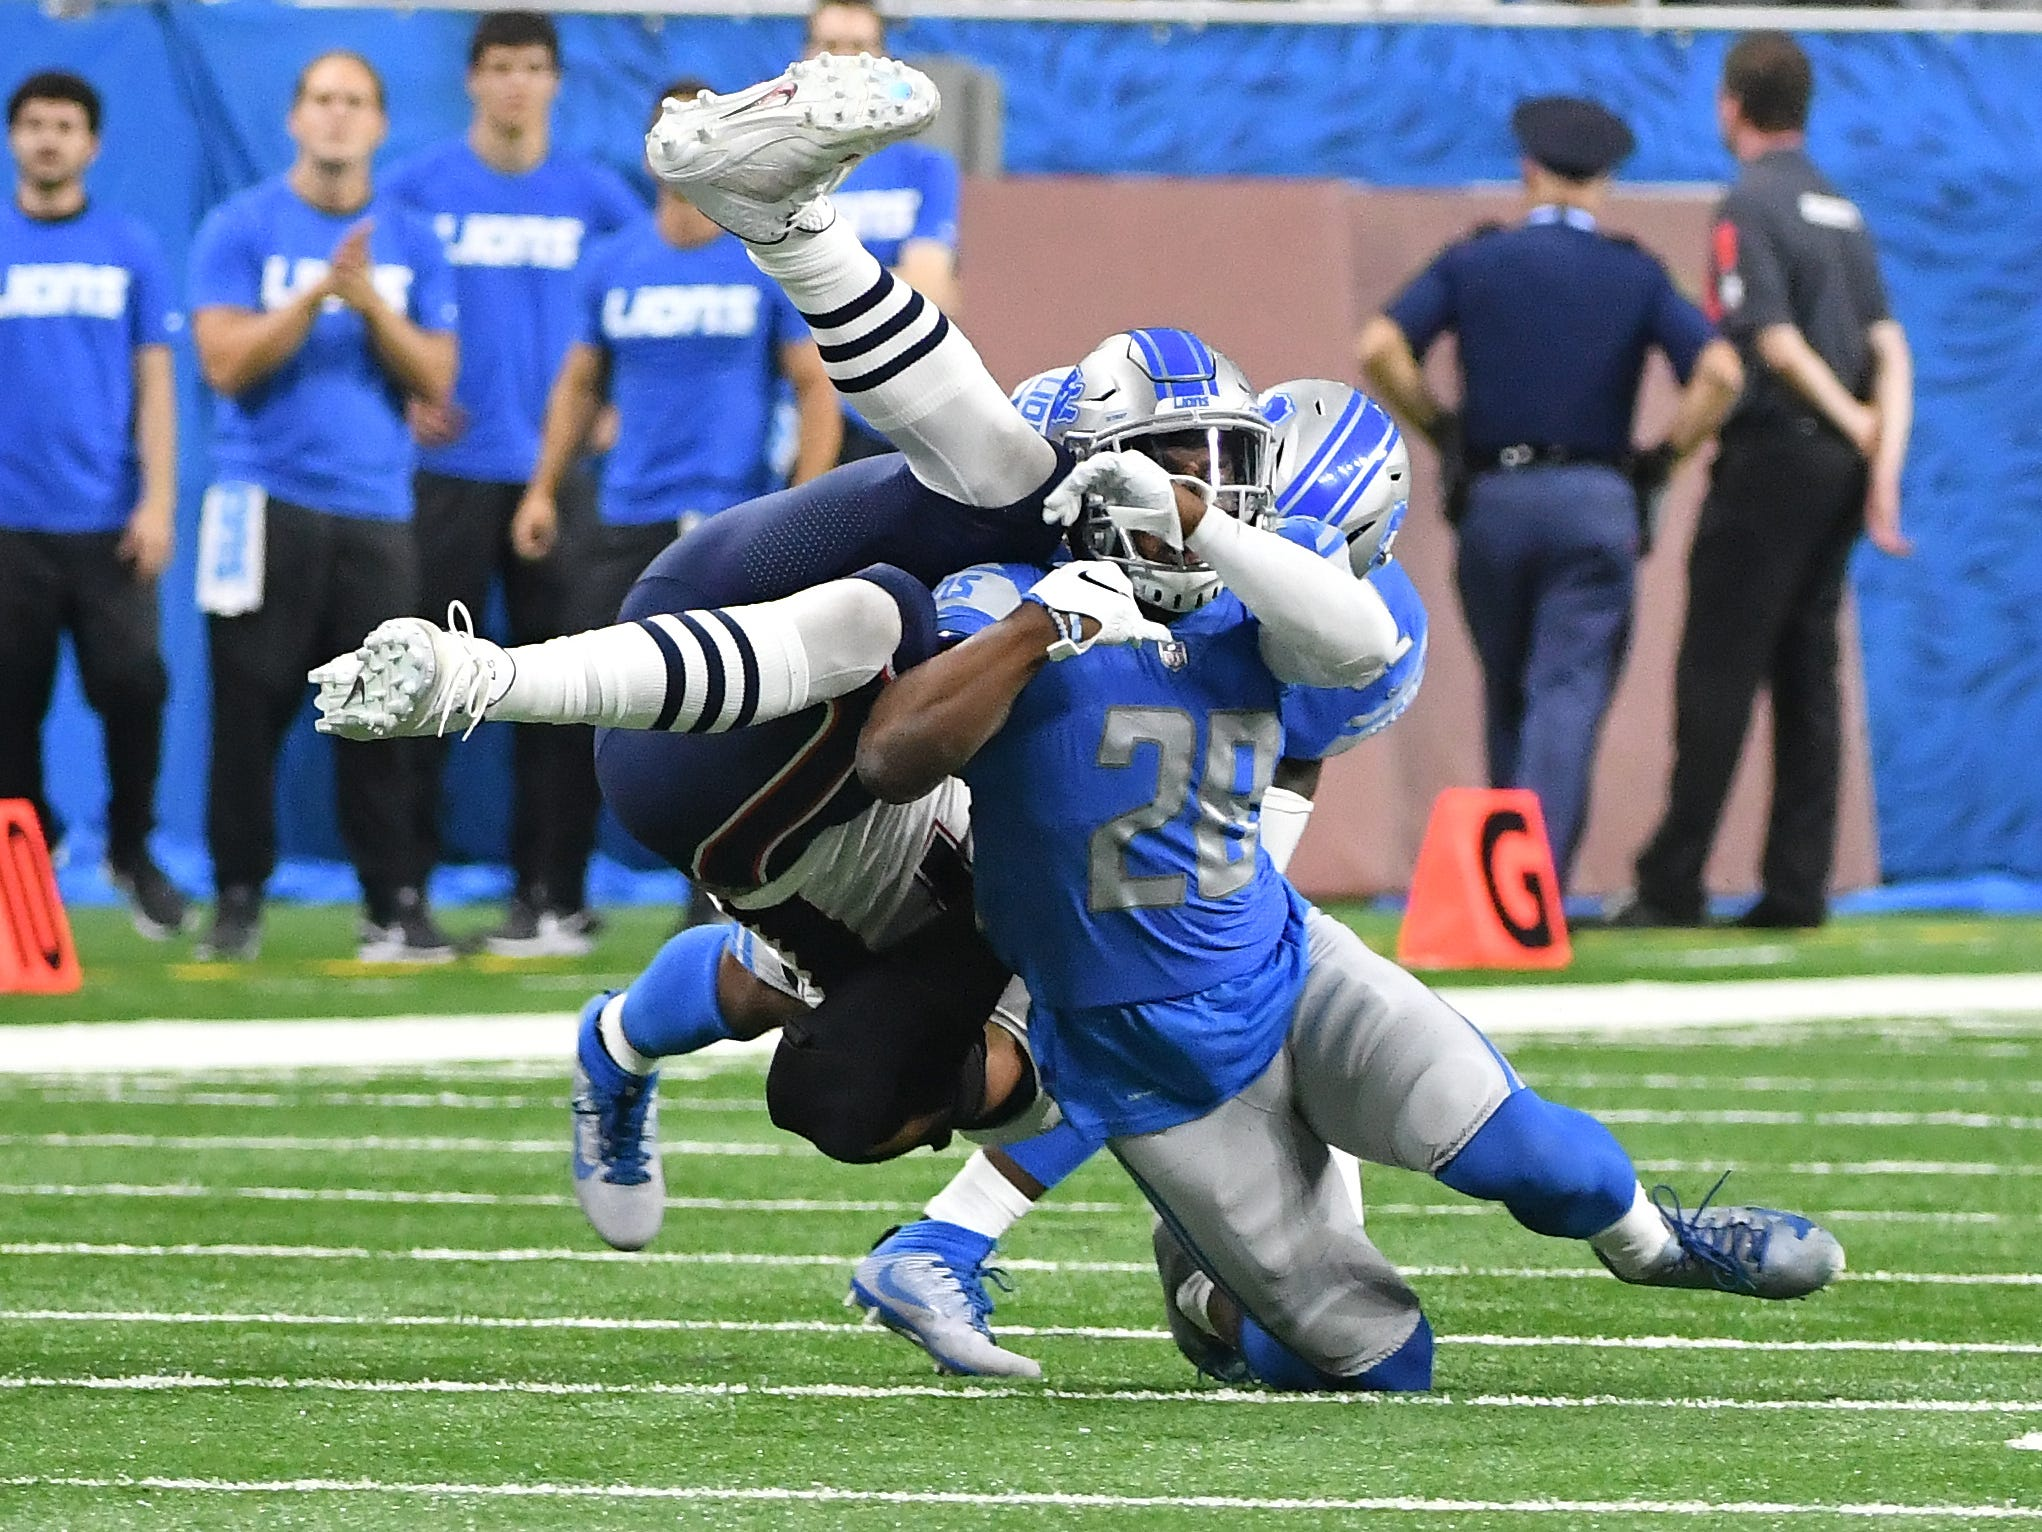 S Quandre Diggs: In his first season as a full-time safety, Diggs was solid. He missed an uncharacteristically high 10 tackles, but that comes with the territory when playing new angles from longer distances. He finished the year with 78 stops and chipped in three interceptions, including the Lions' first and last defensive plays of the year. Grade: B+